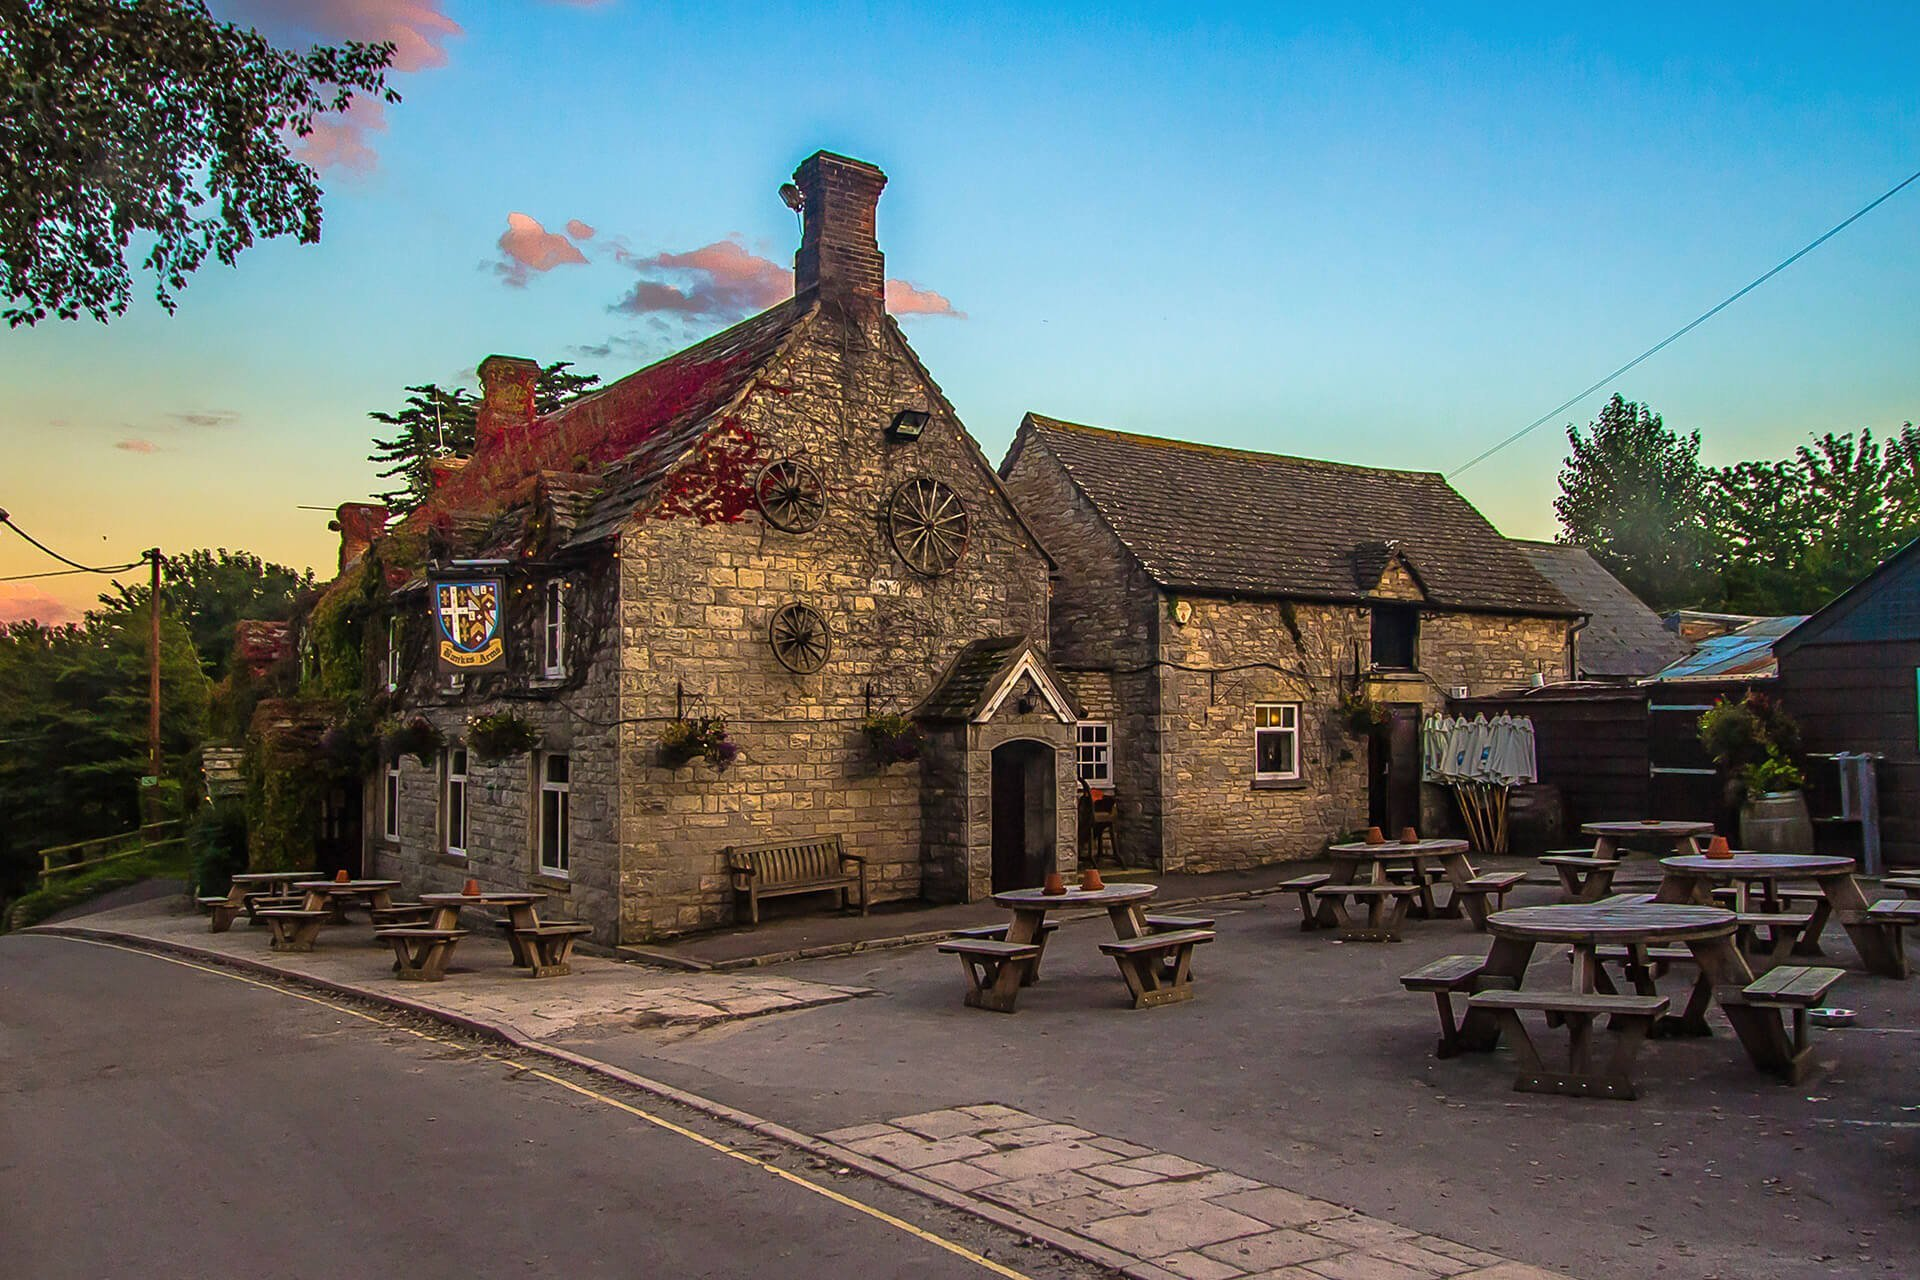 bankes arms and brewery